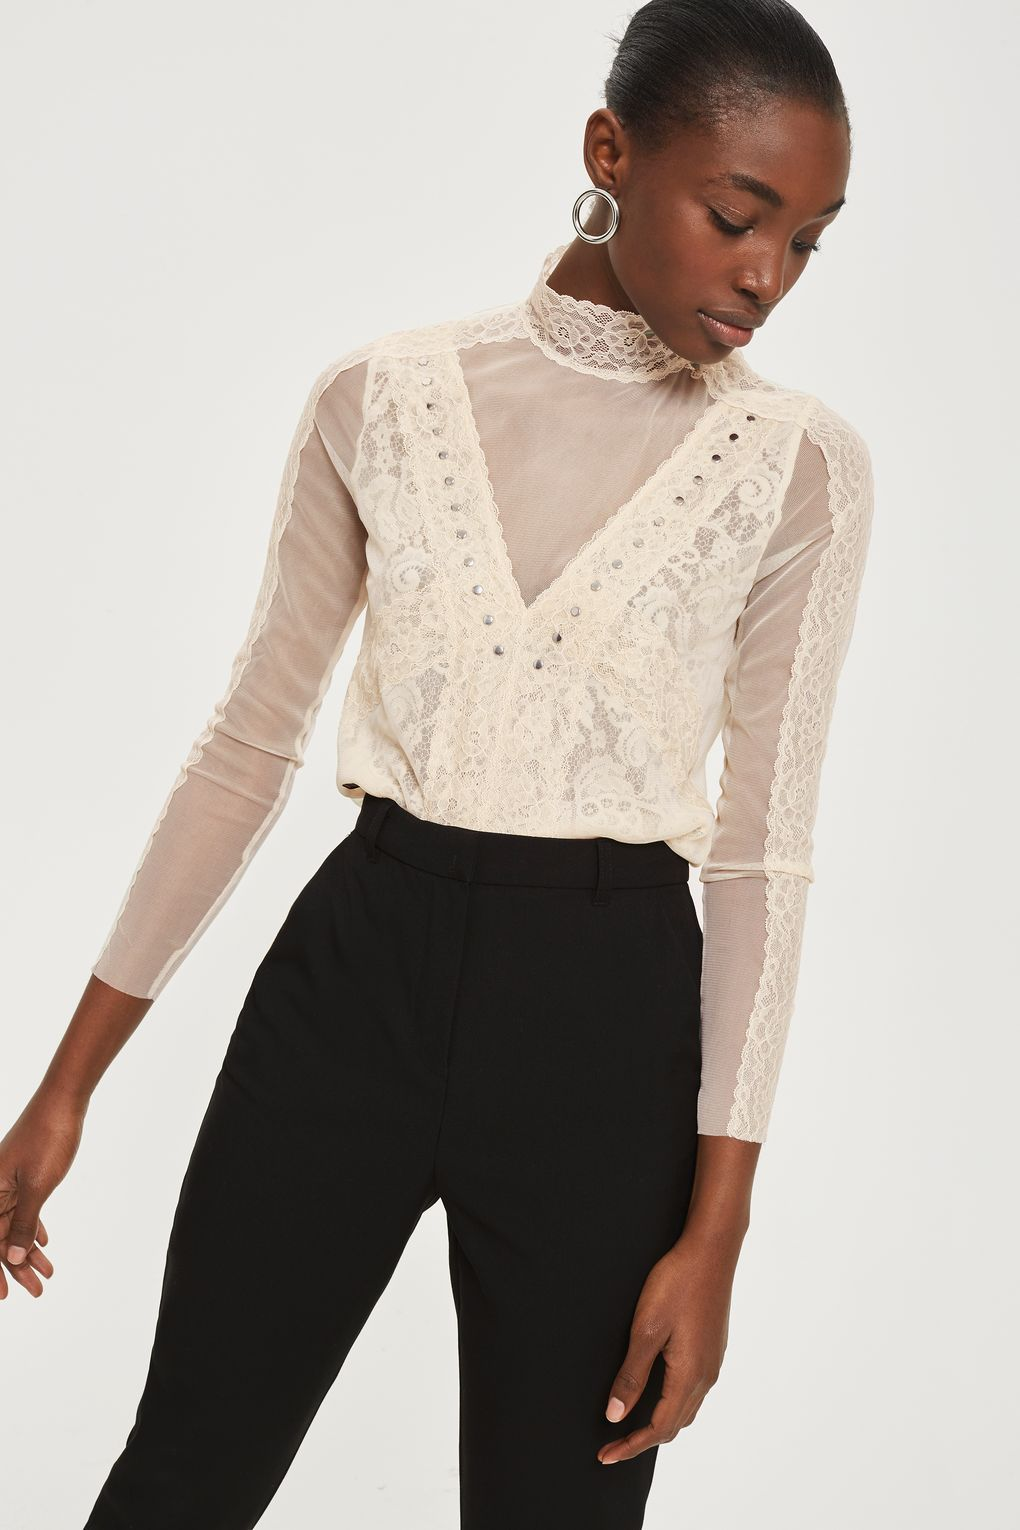 a364dd5673f79 Romantic Lace High Neck Top - Clothing- Topshop